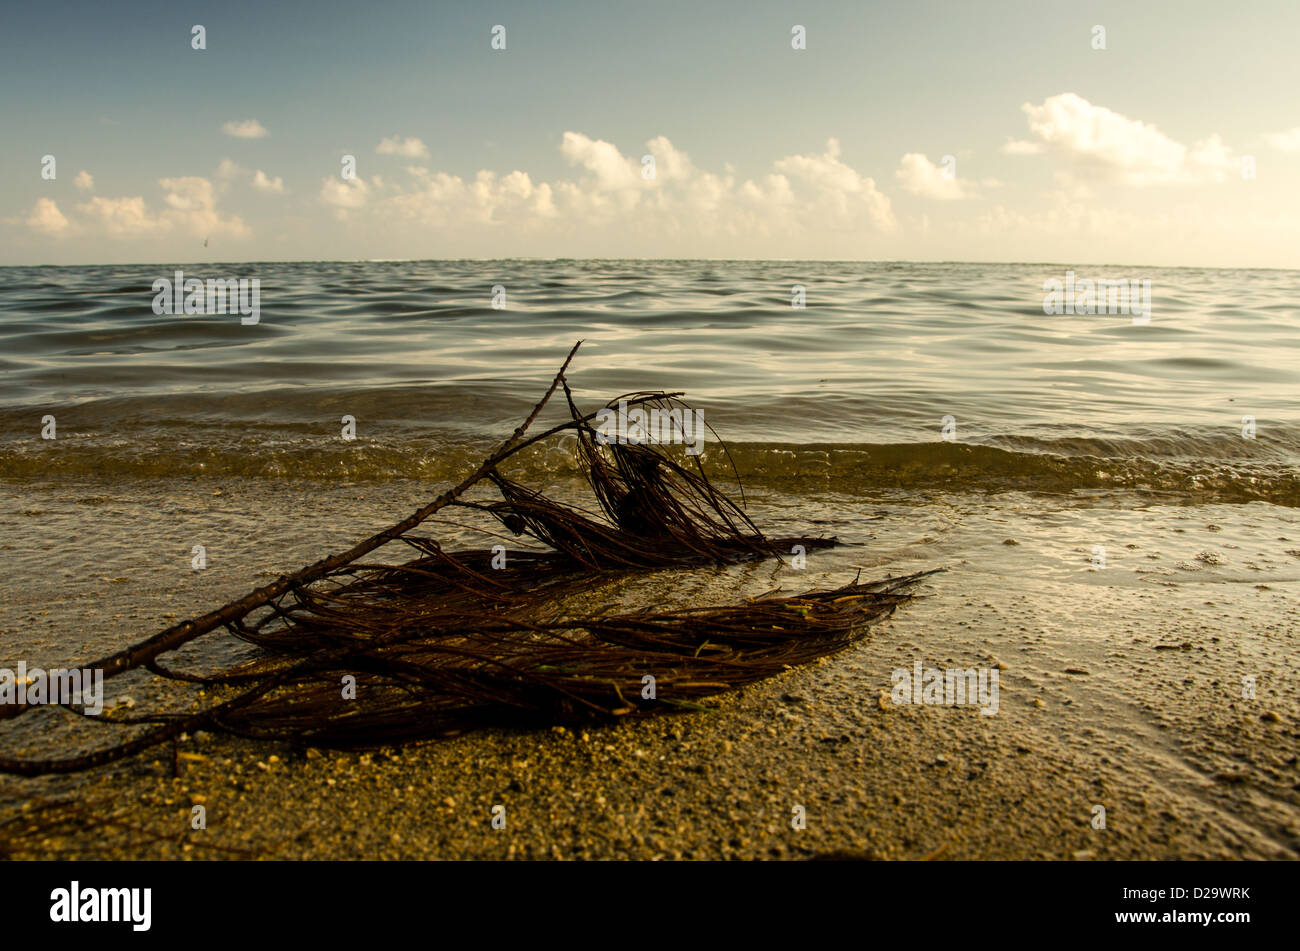 Filao branch on Bel Ombre beach - Stock Image